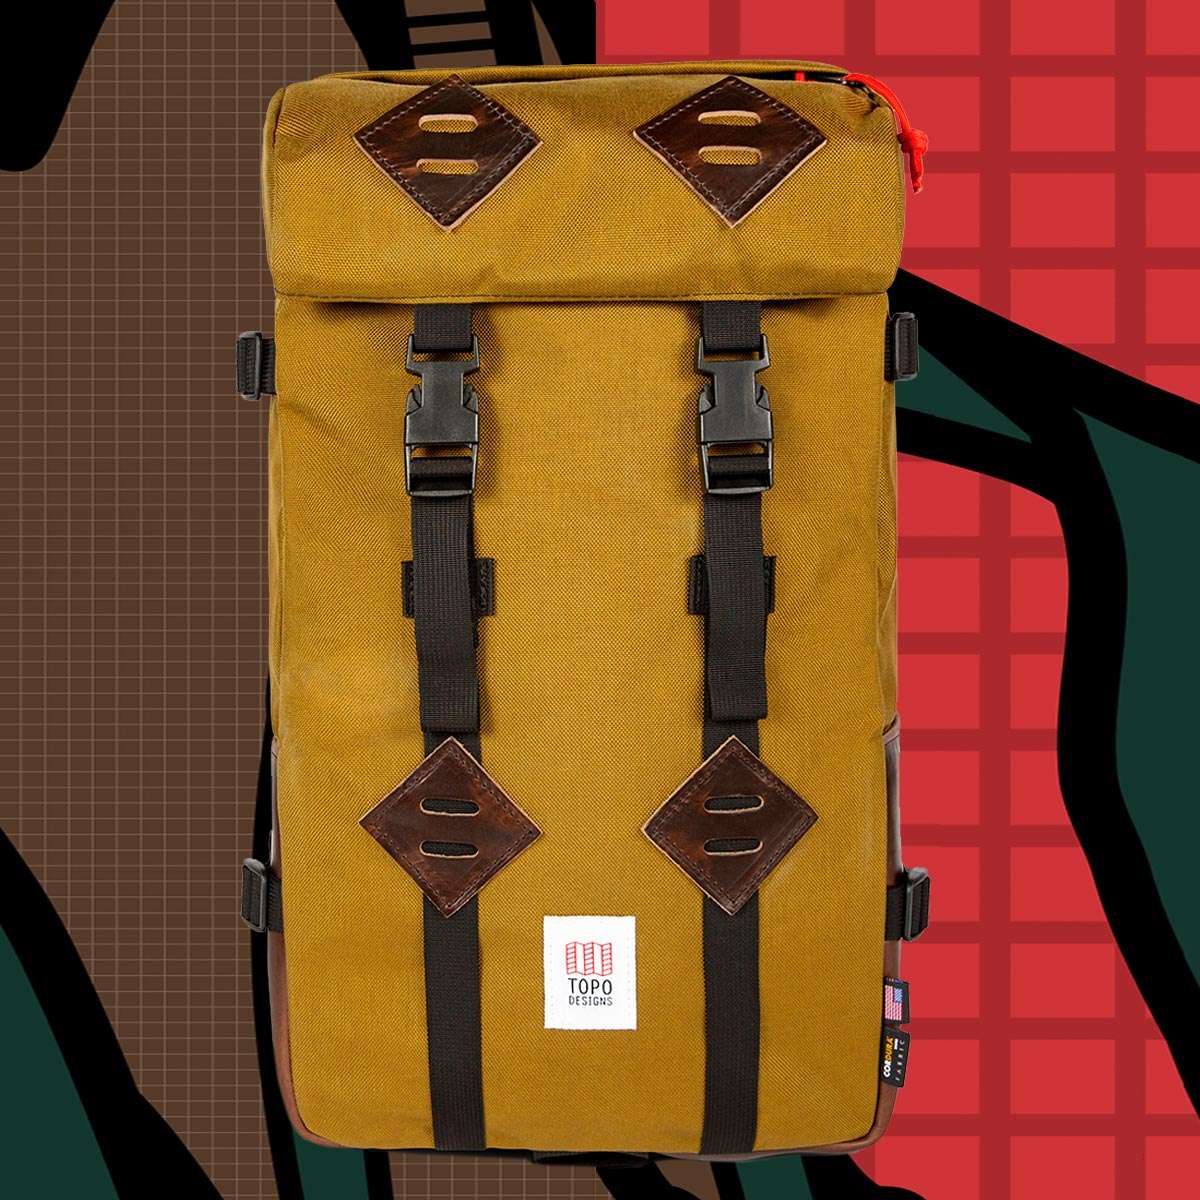 Topo Designs Klettersack Backpack Duck Brown/Brown Leather Lifestyle, perfect backpack for men and women